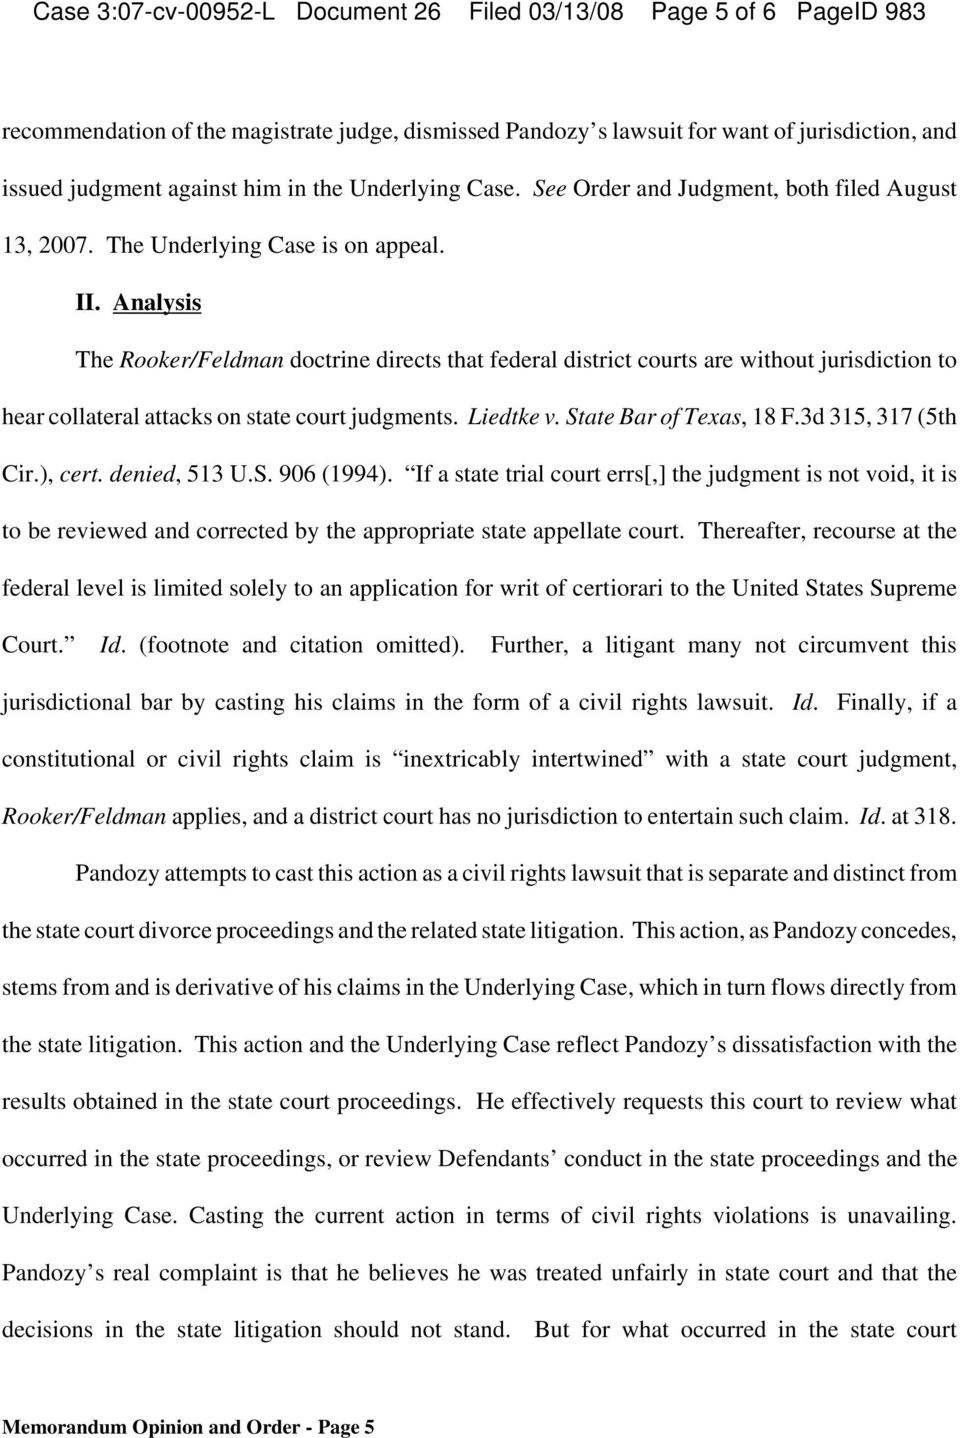 Analysis The Rooker/Feldman doctrine directs that federal district courts are without jurisdiction to hear collateral attacks on state court judgments. Liedtke v. State Bar of Texas, 18 F.